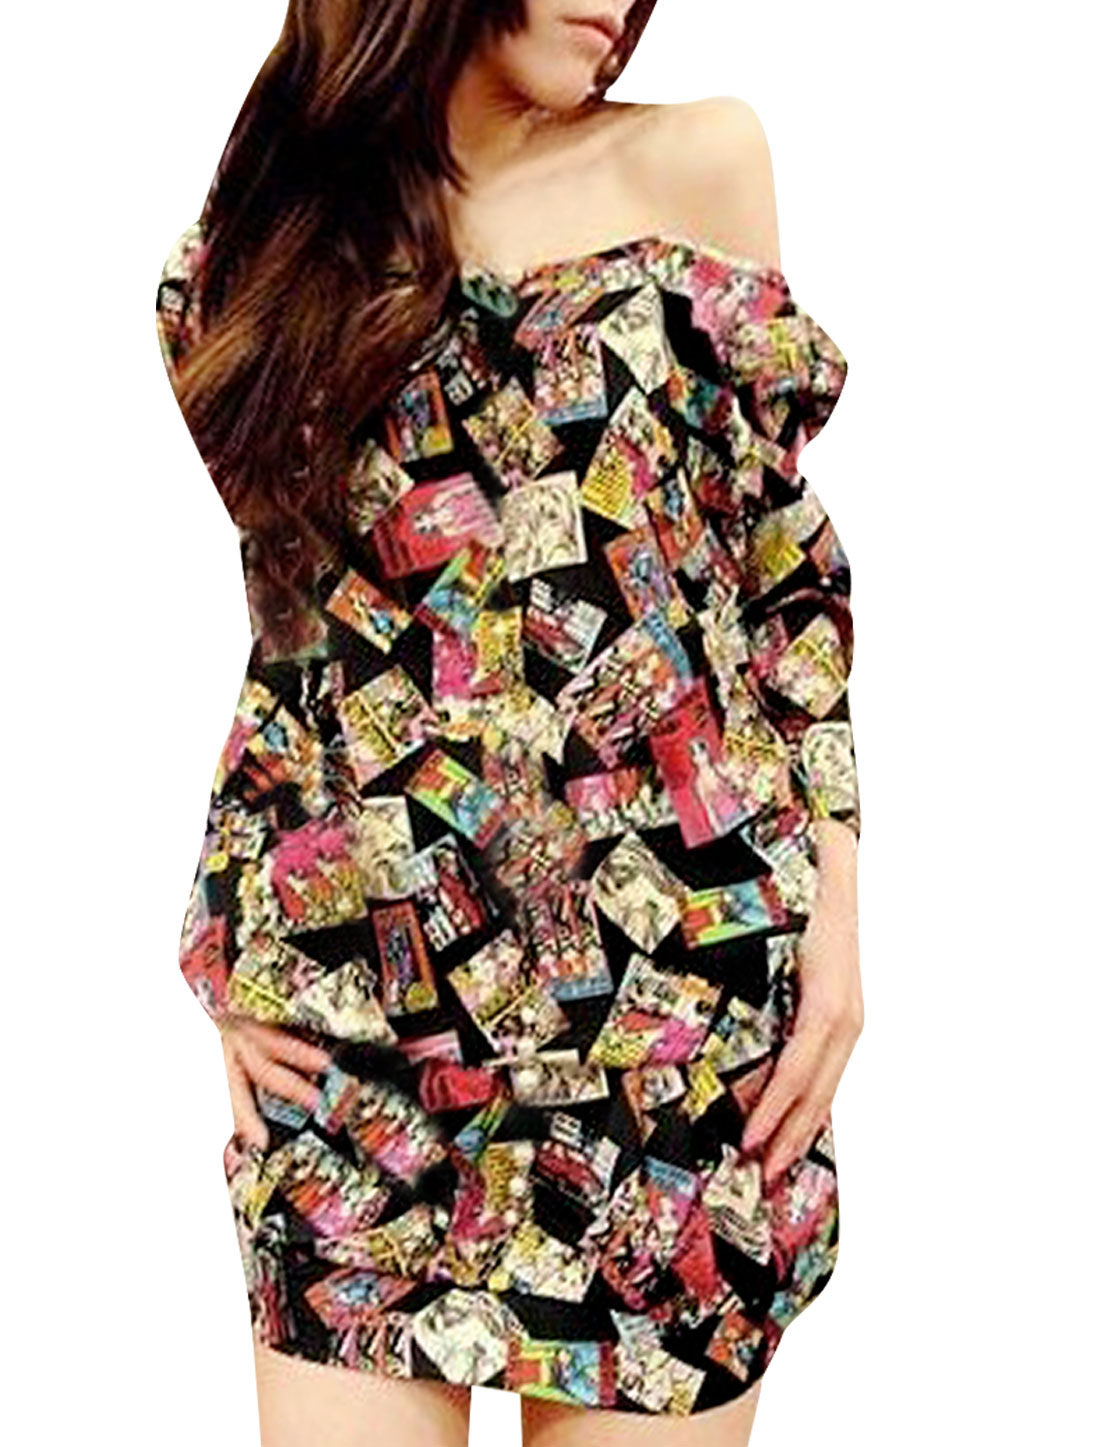 Lady Boat Neck Cartoon Prints Design Multicolor Tunic Mini Dress S